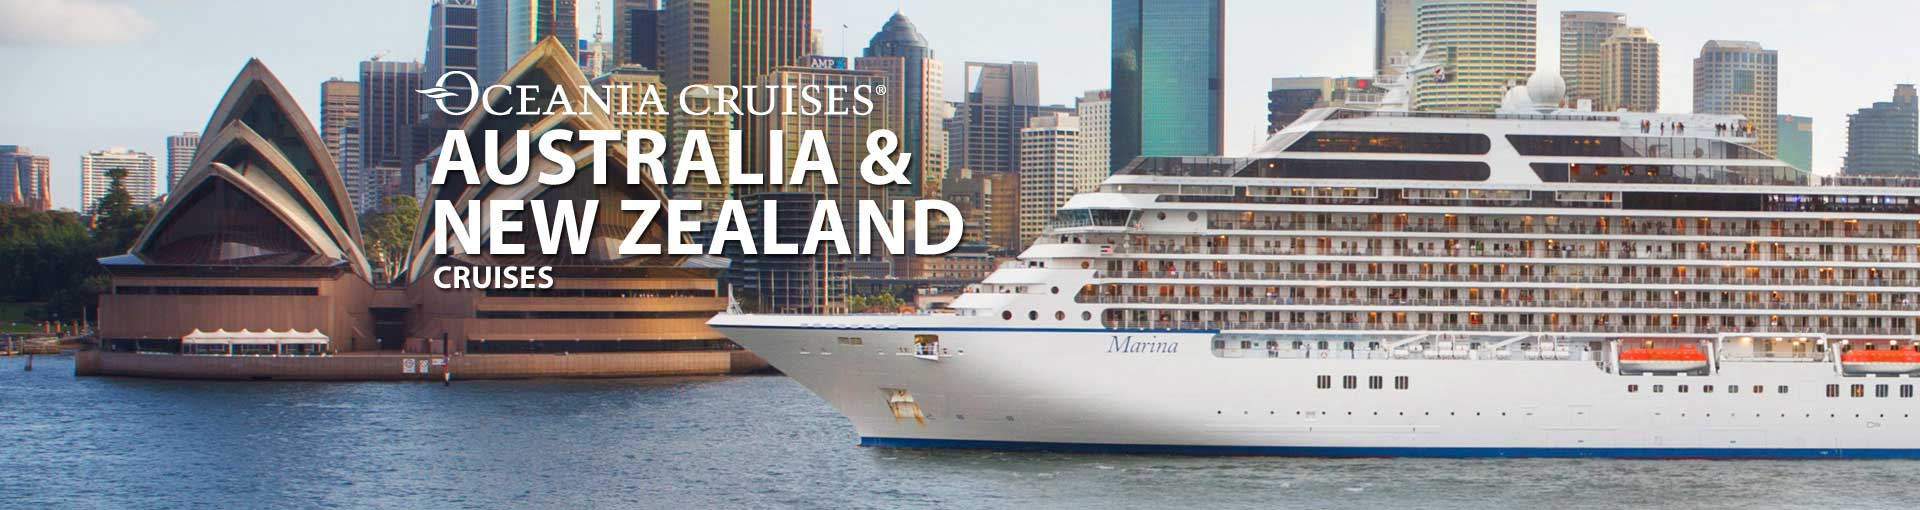 Oceania Cruises Australia New Zealand cruises